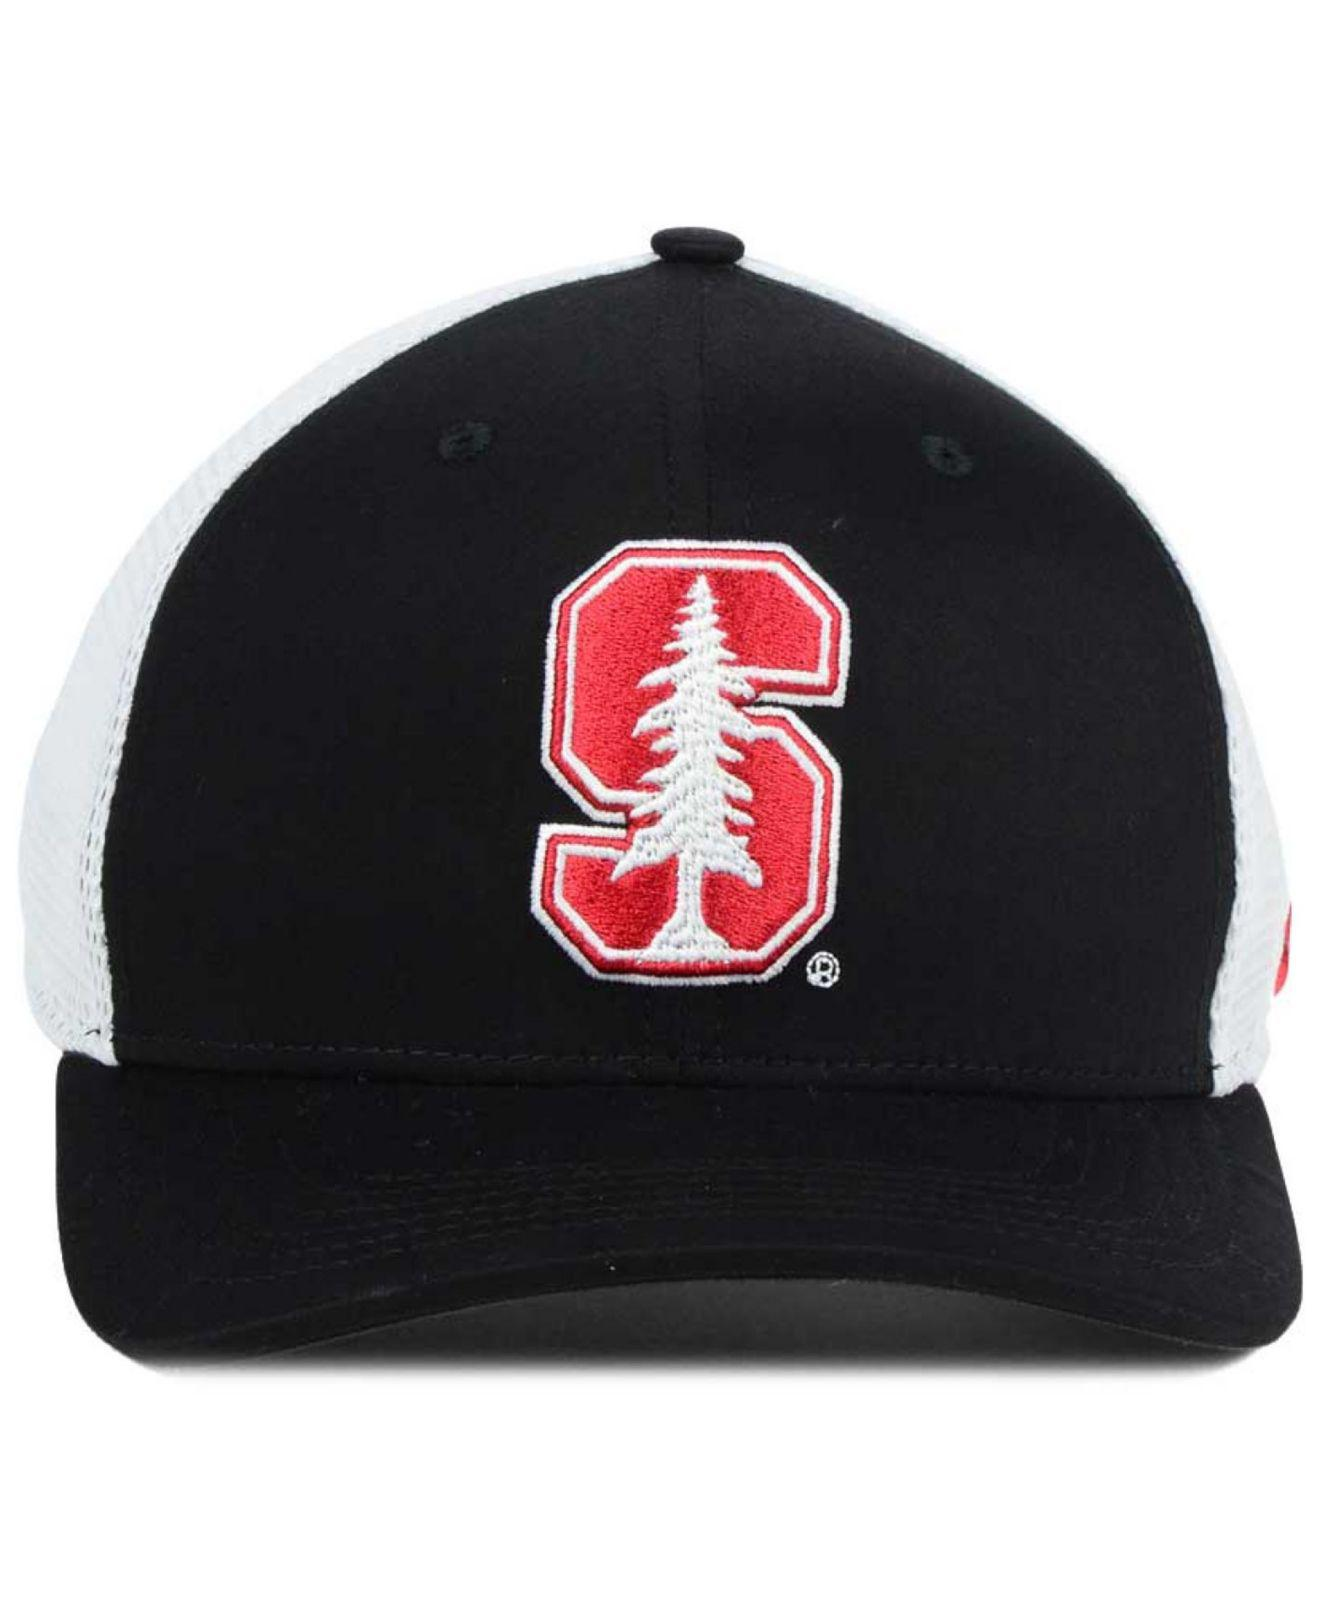 84bdefc9 ... denmark lyst nike stanford cardinal aero bill mesh swooshflex cap in  black for men 6ead7 3a871